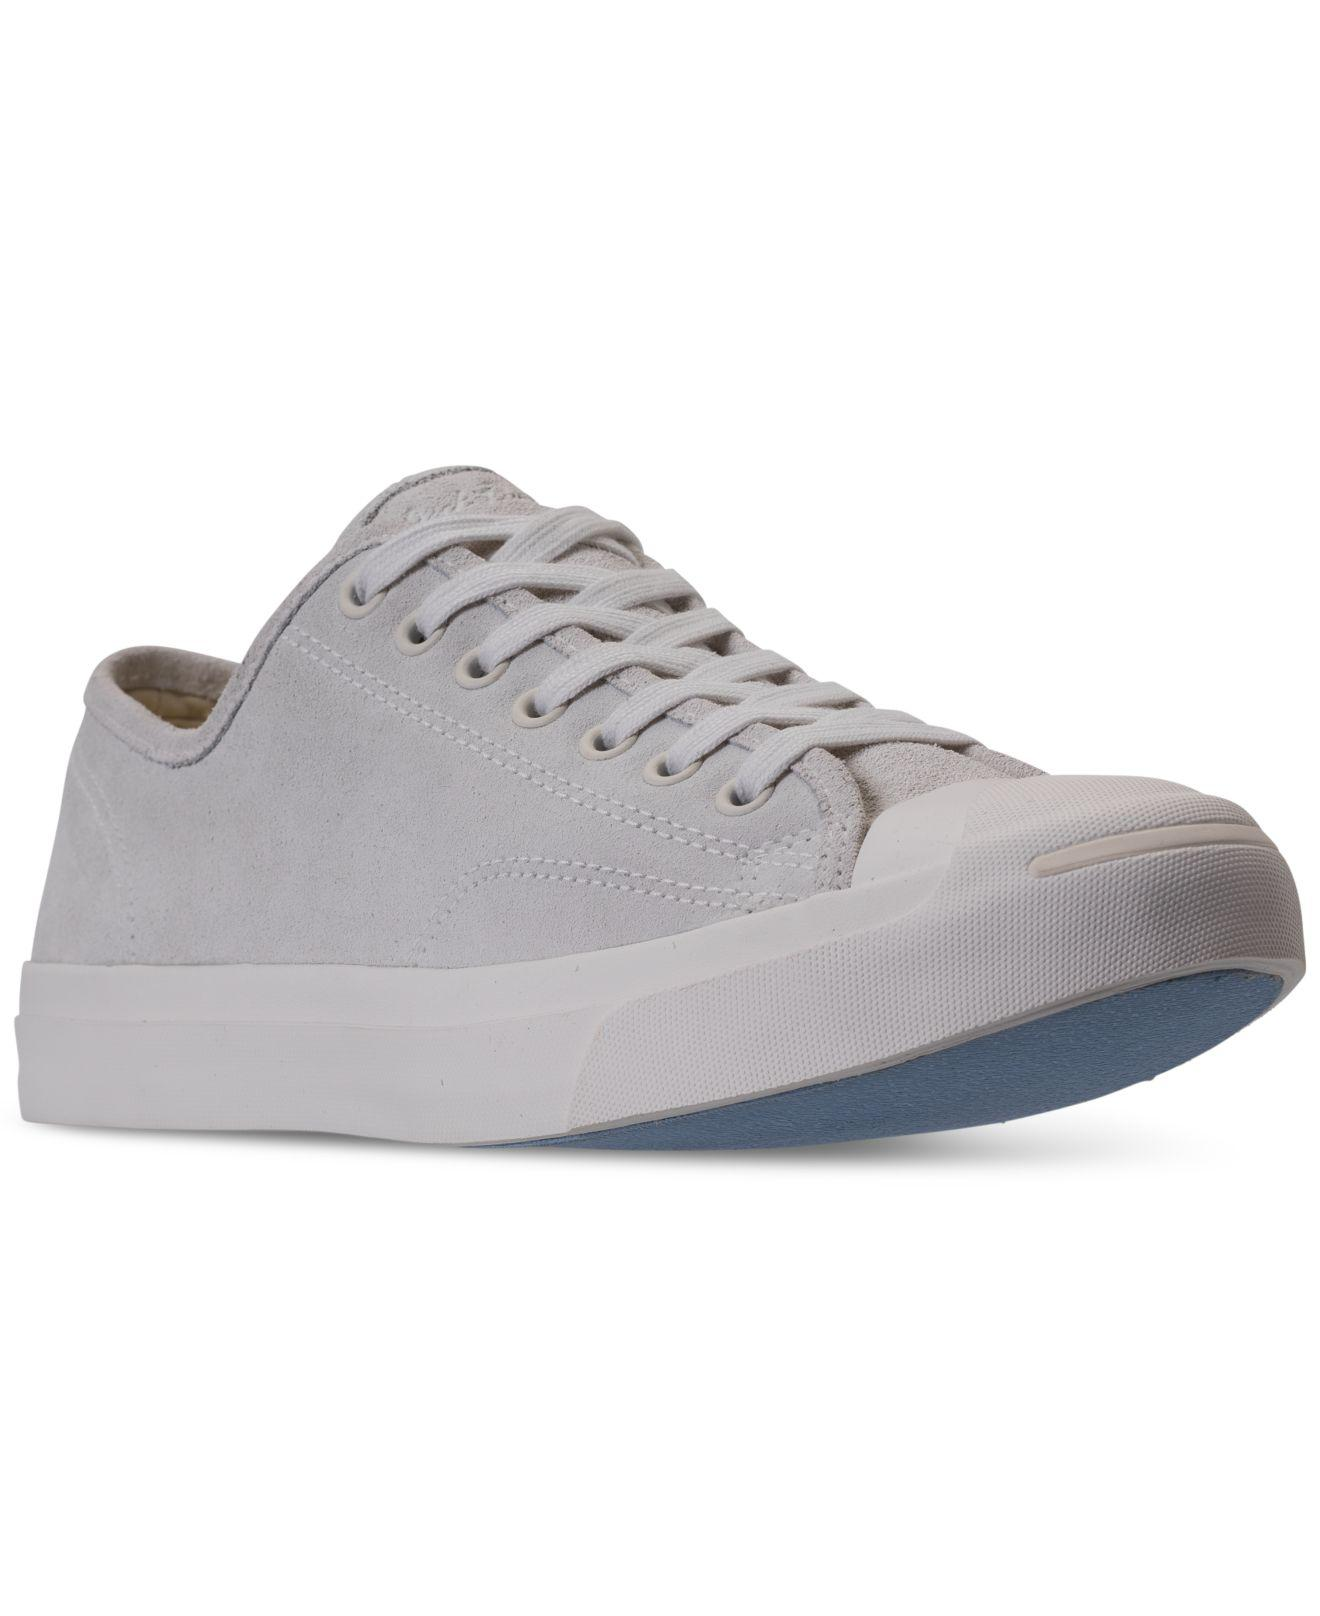 f7bb143b51fb5b Lyst - Converse Men s Jack Purcell Suede Low-top Casual Sneakers ...